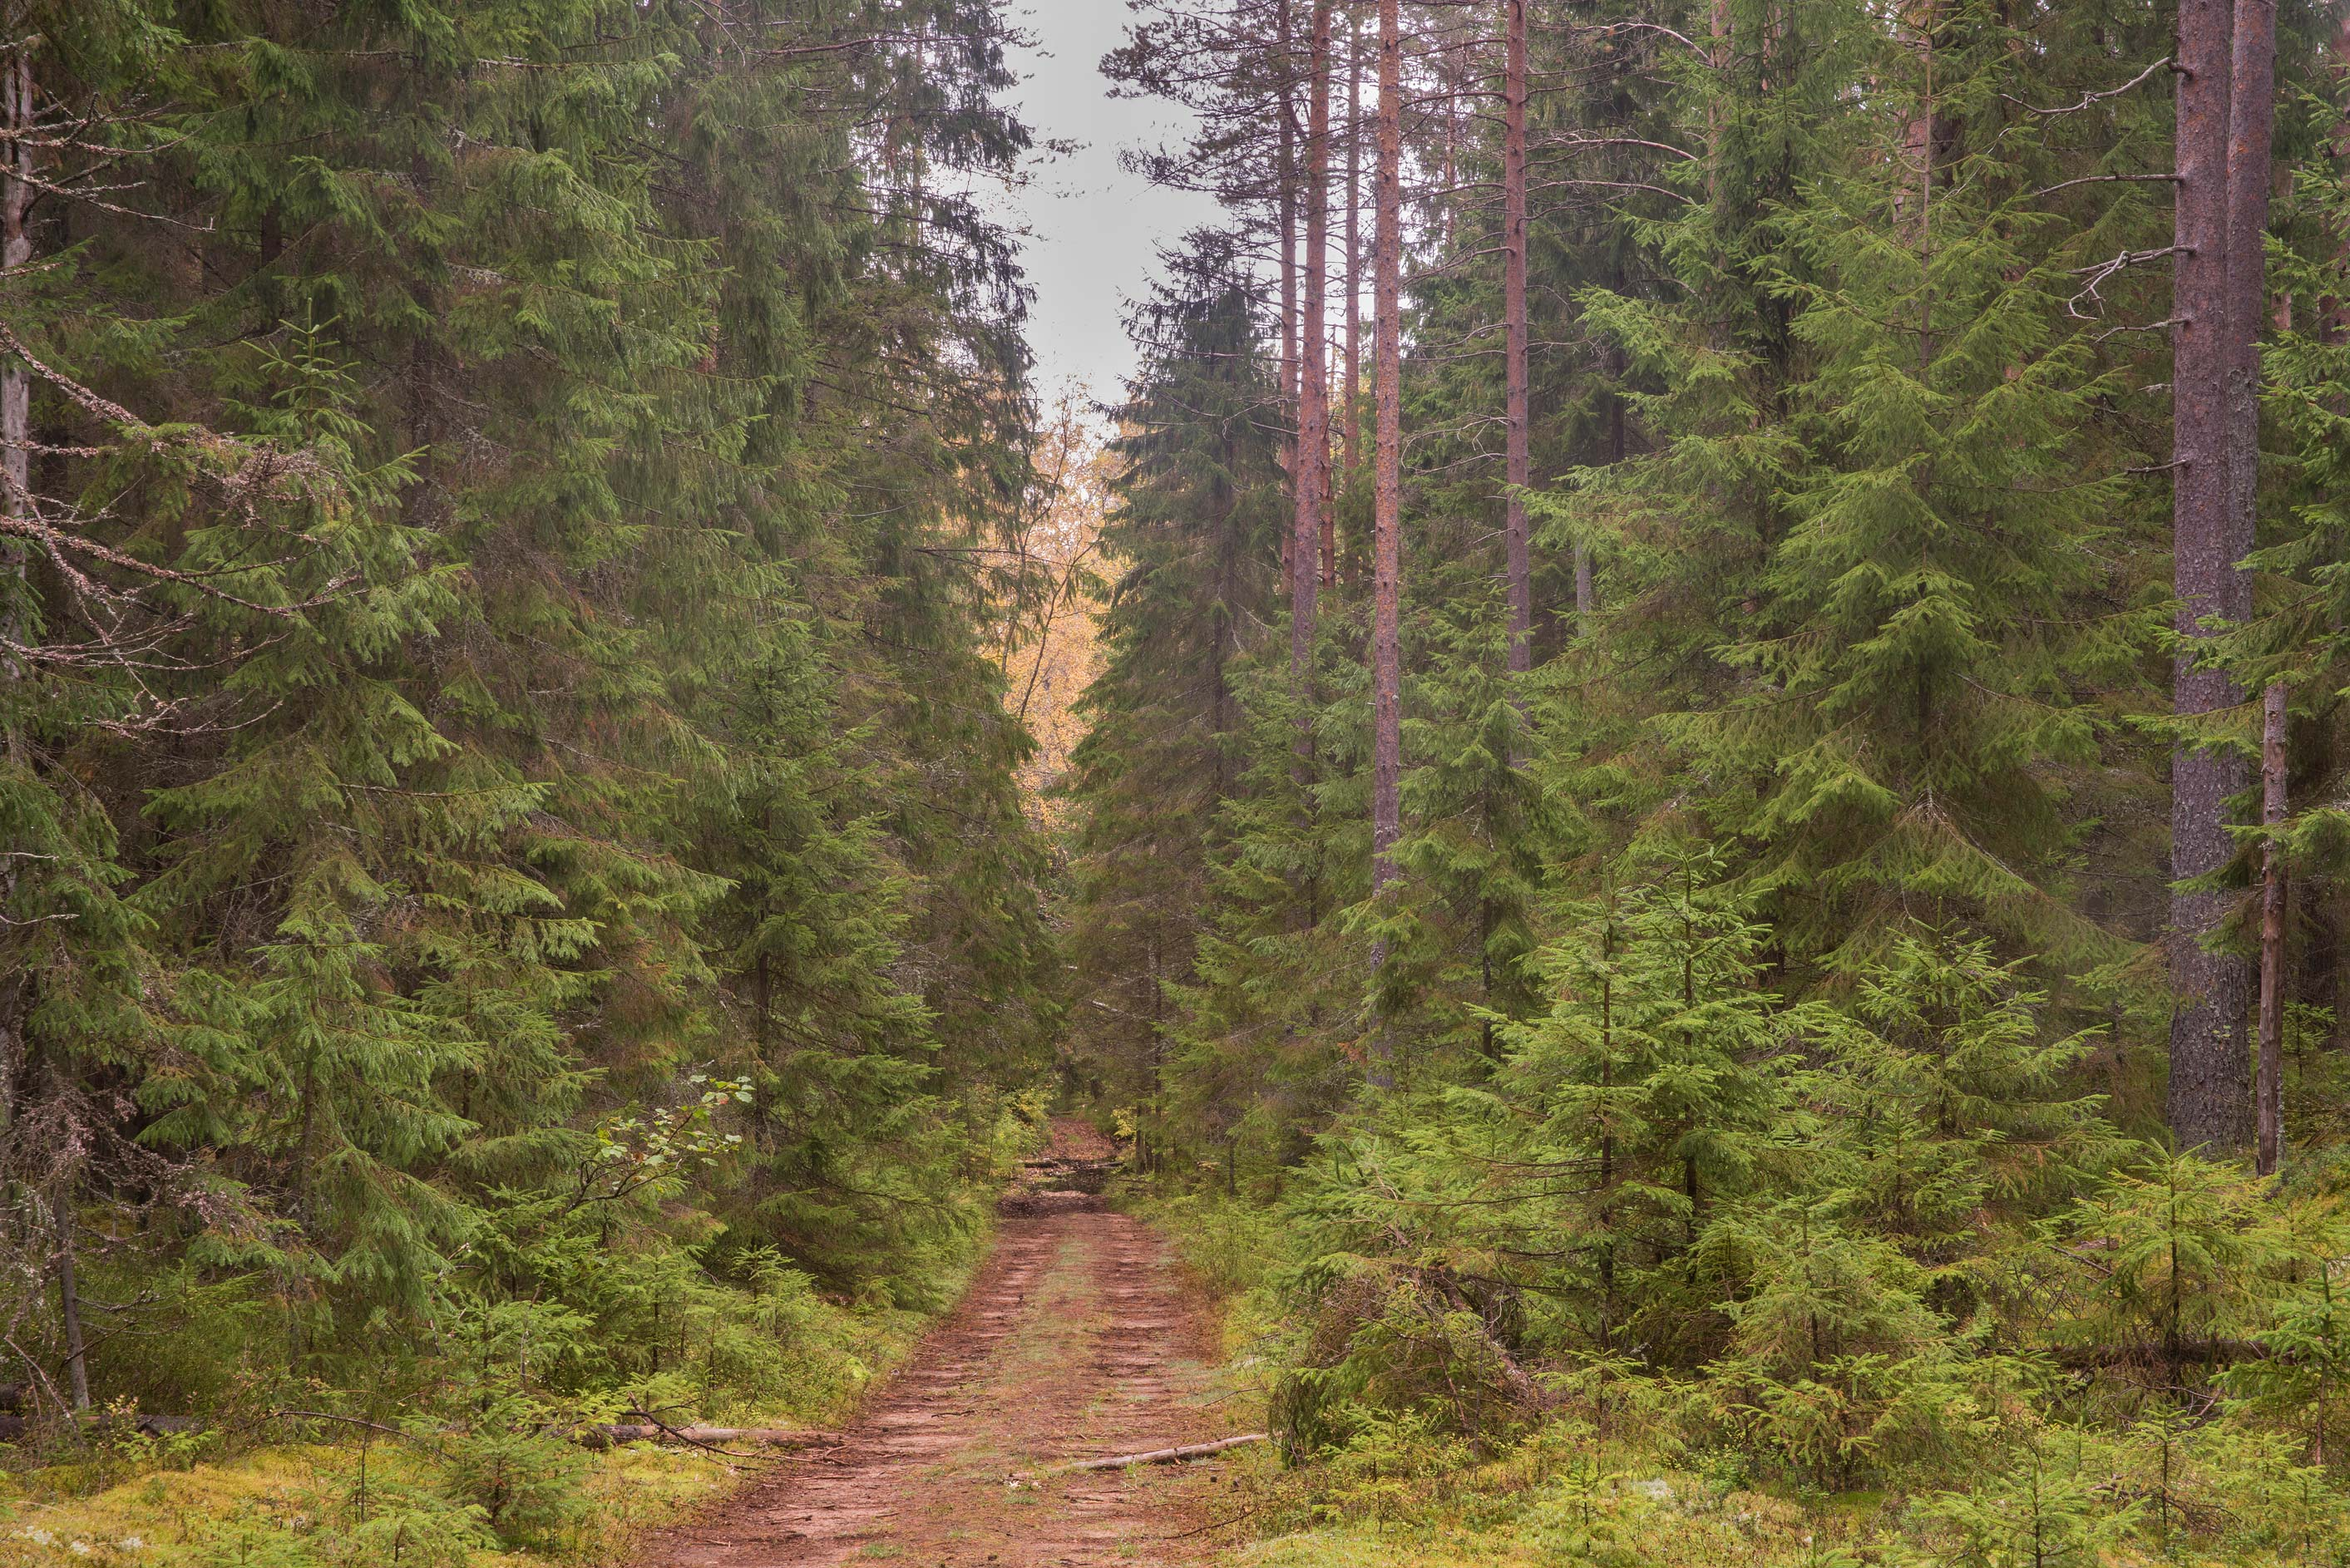 A forest near Zelenogorsk, 25 miles north-west from St.Petersburg. Russia